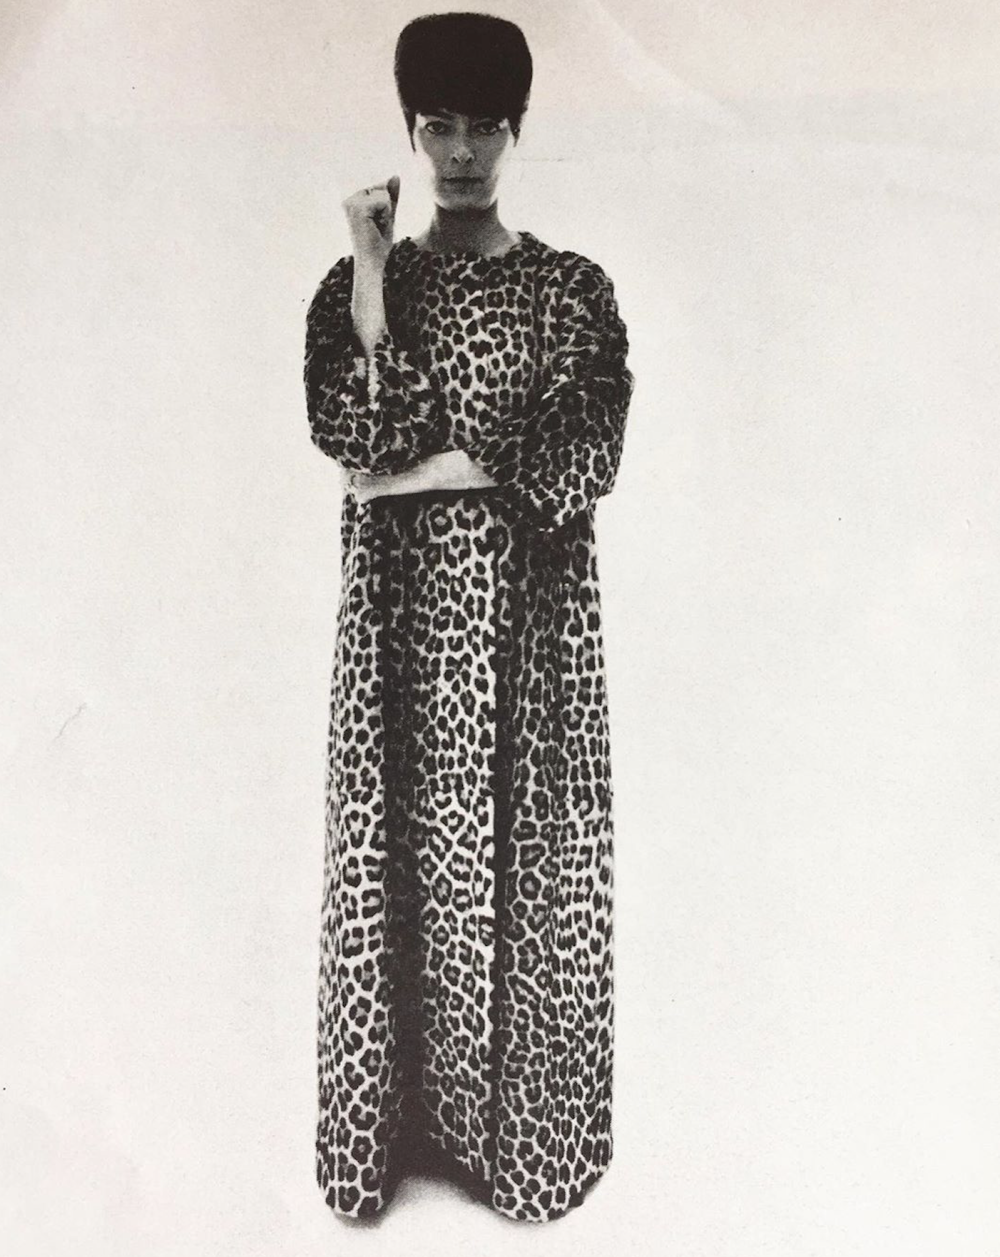 Annabel buffet in balenciaga s long panther hostess dress photographed by william klein